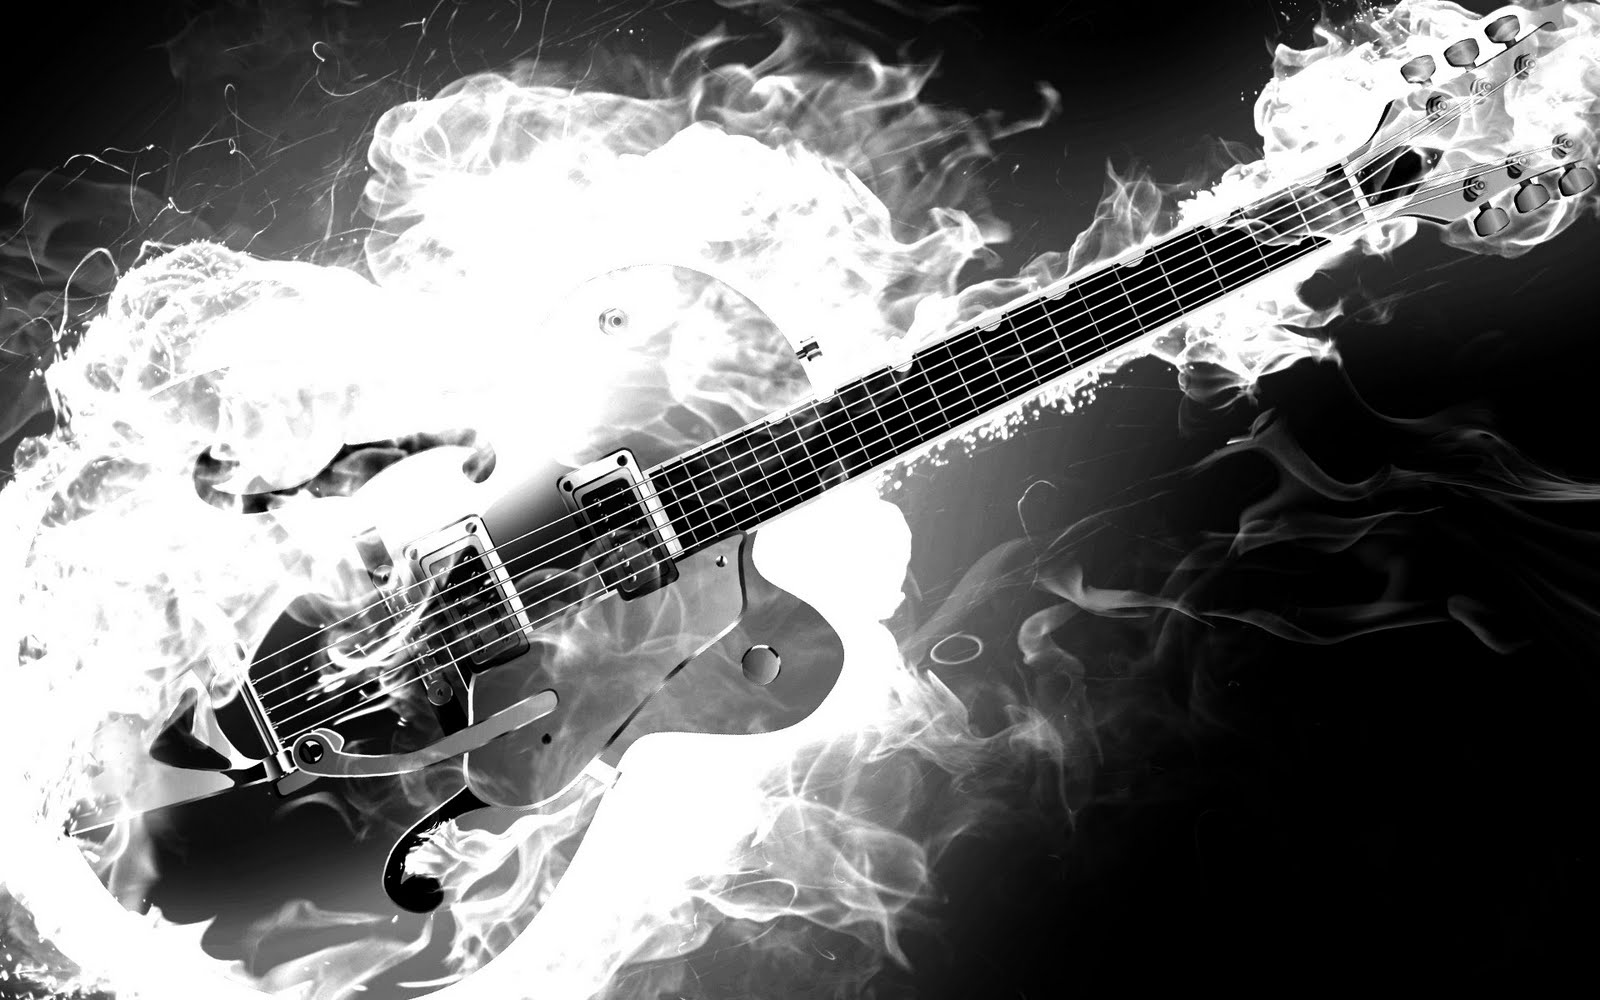 http://2.bp.blogspot.com/-XcKTVonD39Y/TfkxgqrRnSI/AAAAAAAAAnw/aP0N4lAO0oA/s1600/Electric+Rockabilly+Guitar+on+Fire+Monochrome+Black+and+White+Smoke+Flames+HD+Music+Desktop+Wallpaper+1920x1200+Great+Guitar+Sound+www.GreatGuitarSound.jpg